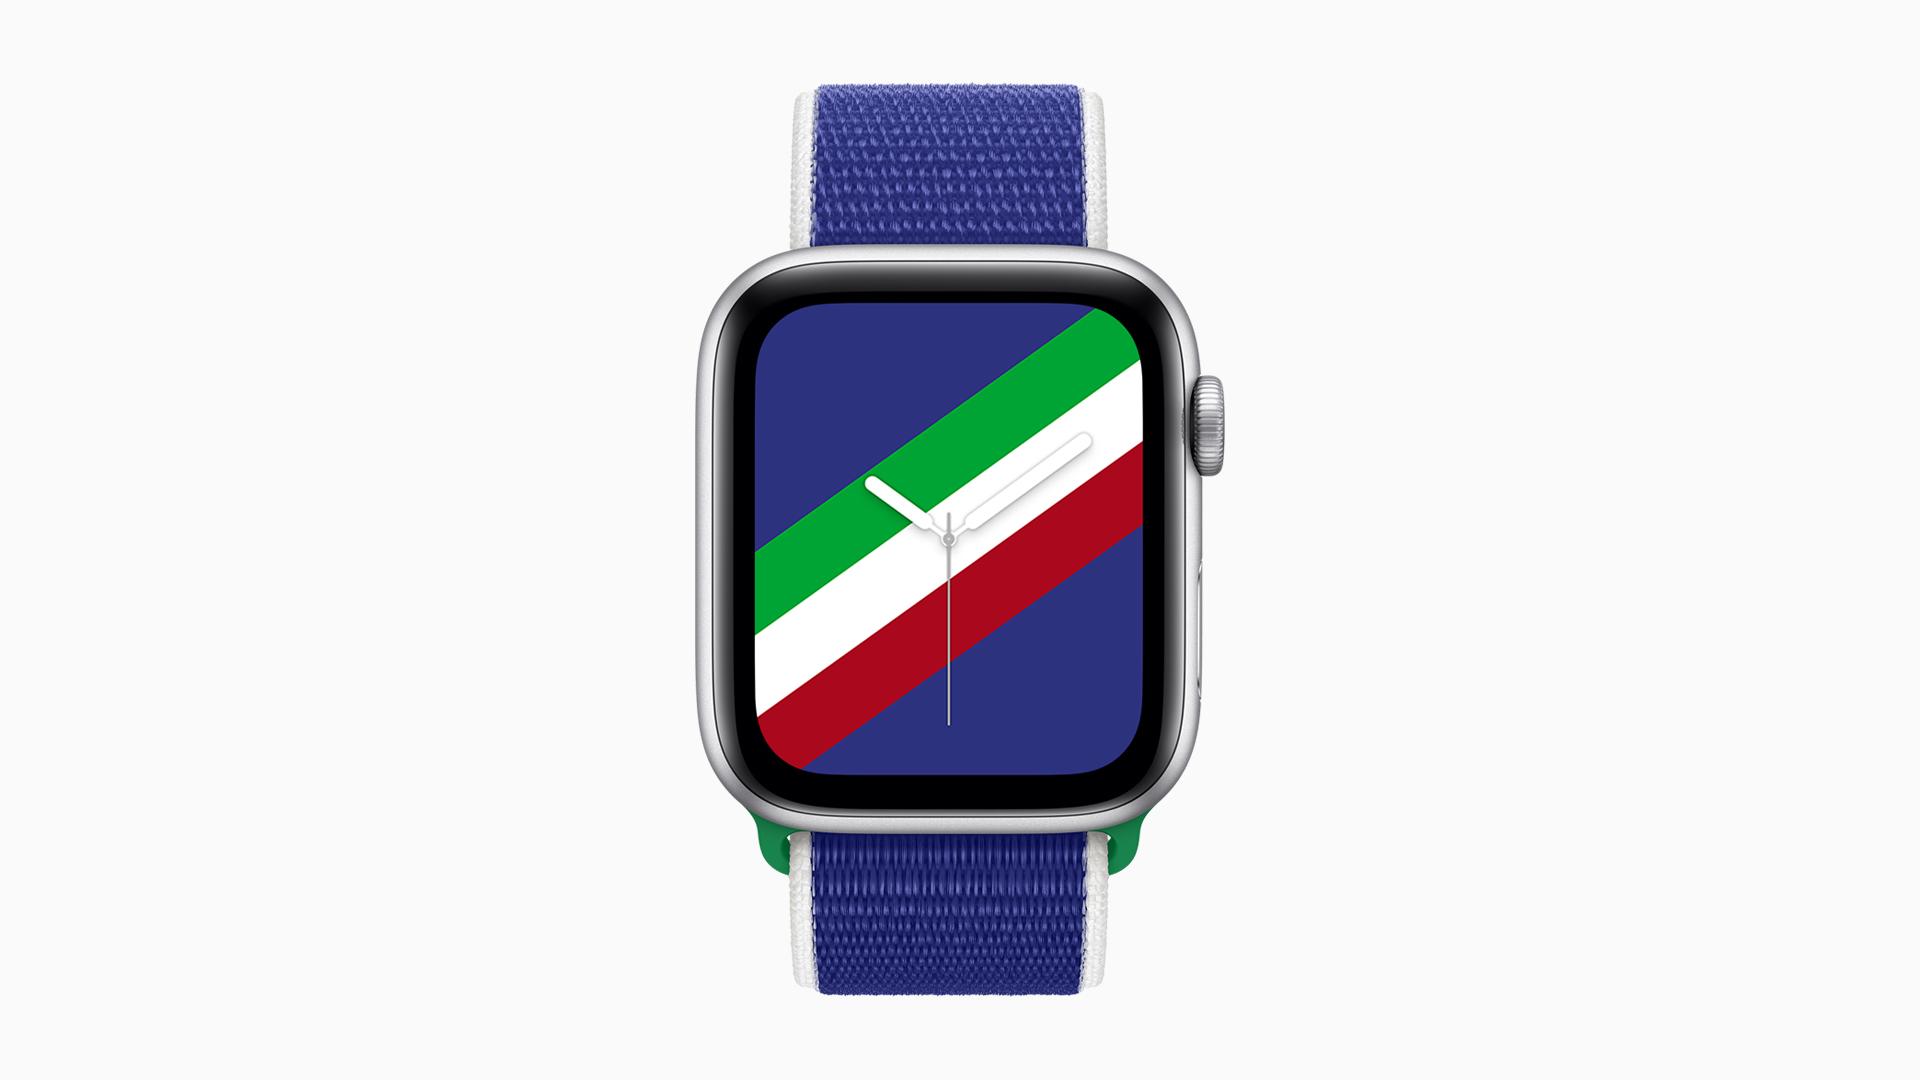 New sport loop bands and matching downloadable watch faces